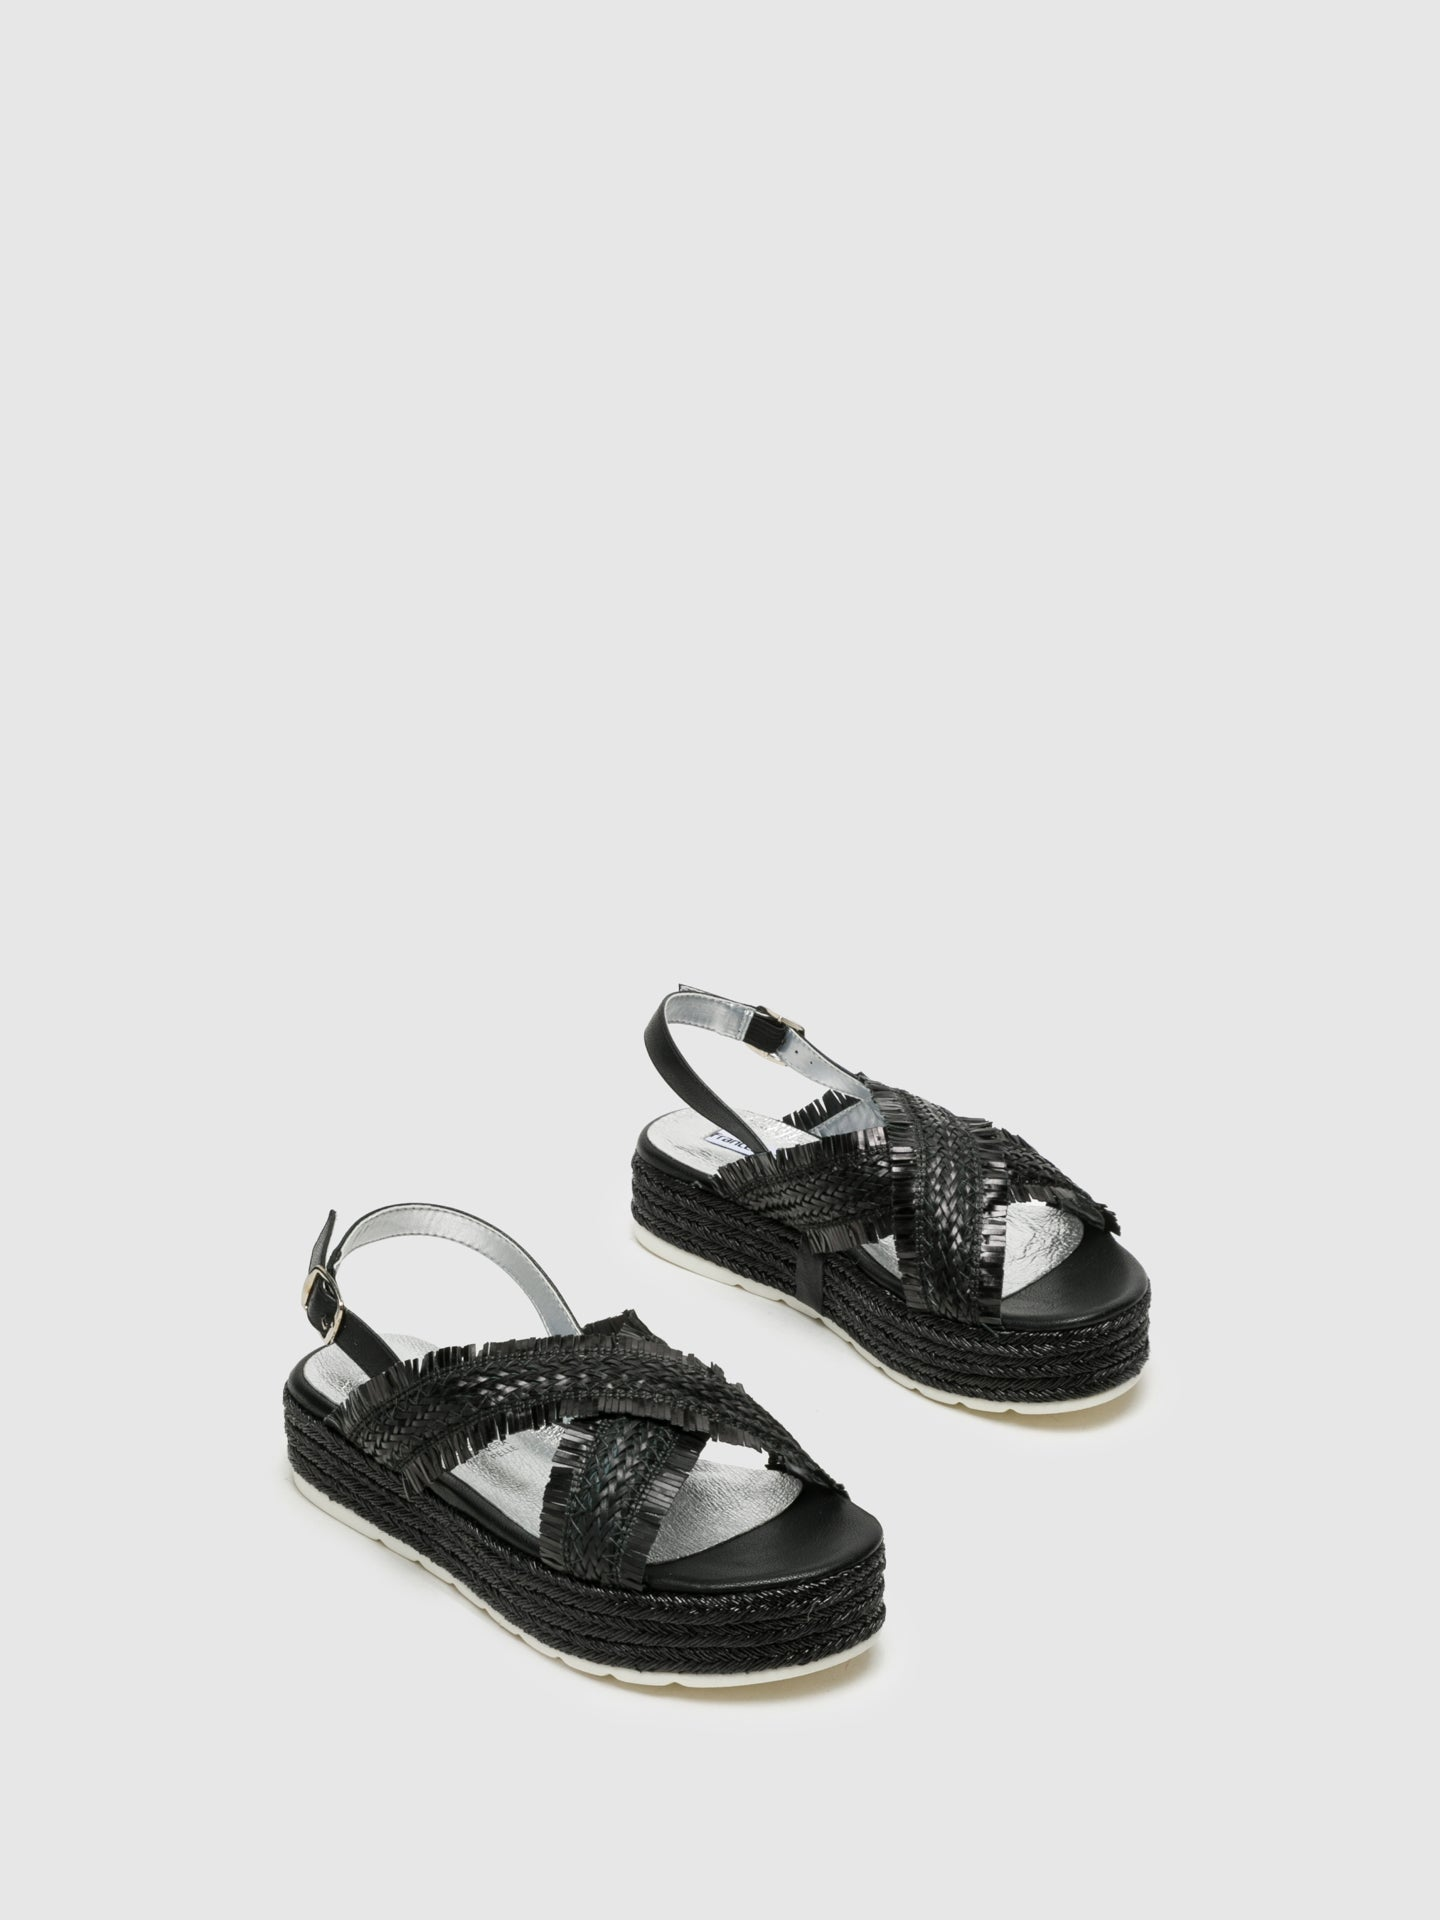 Francesco Milano Black Buckle Sandals